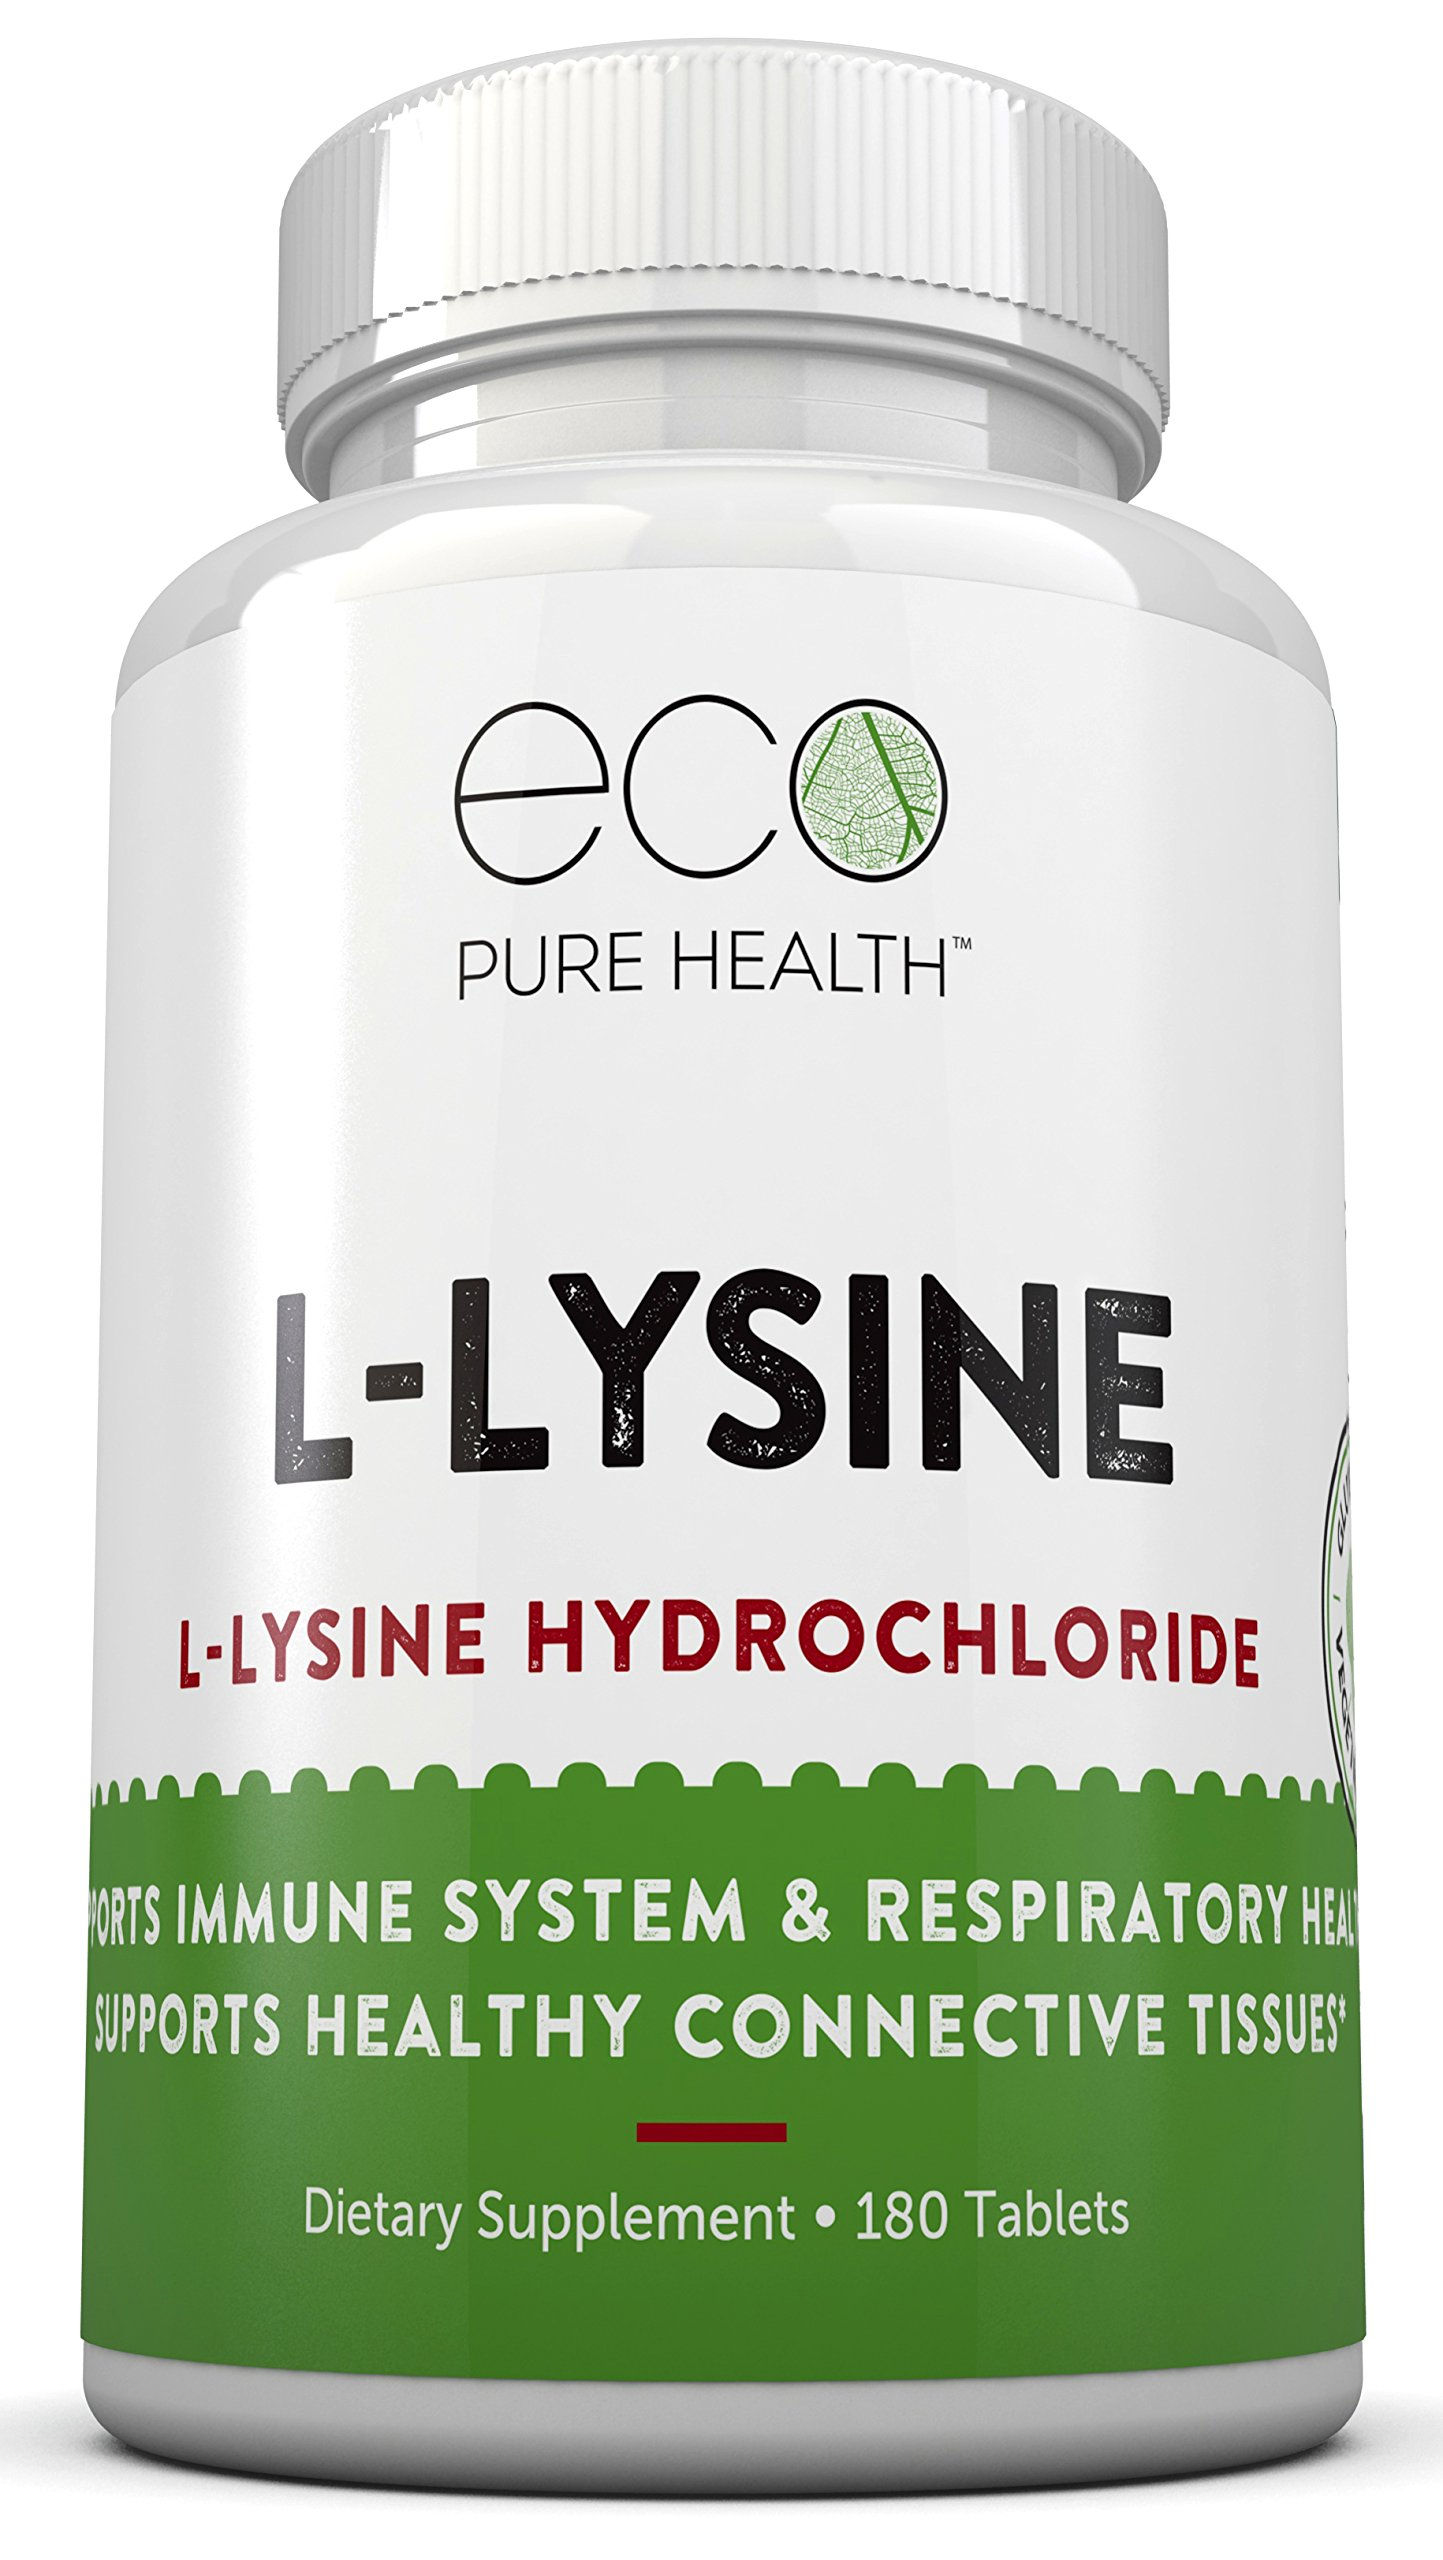 L-Lysine Hydrochloride Supplement, Supports Immune System + Respiratory Health, 180 Capsules by Eco Pure Health